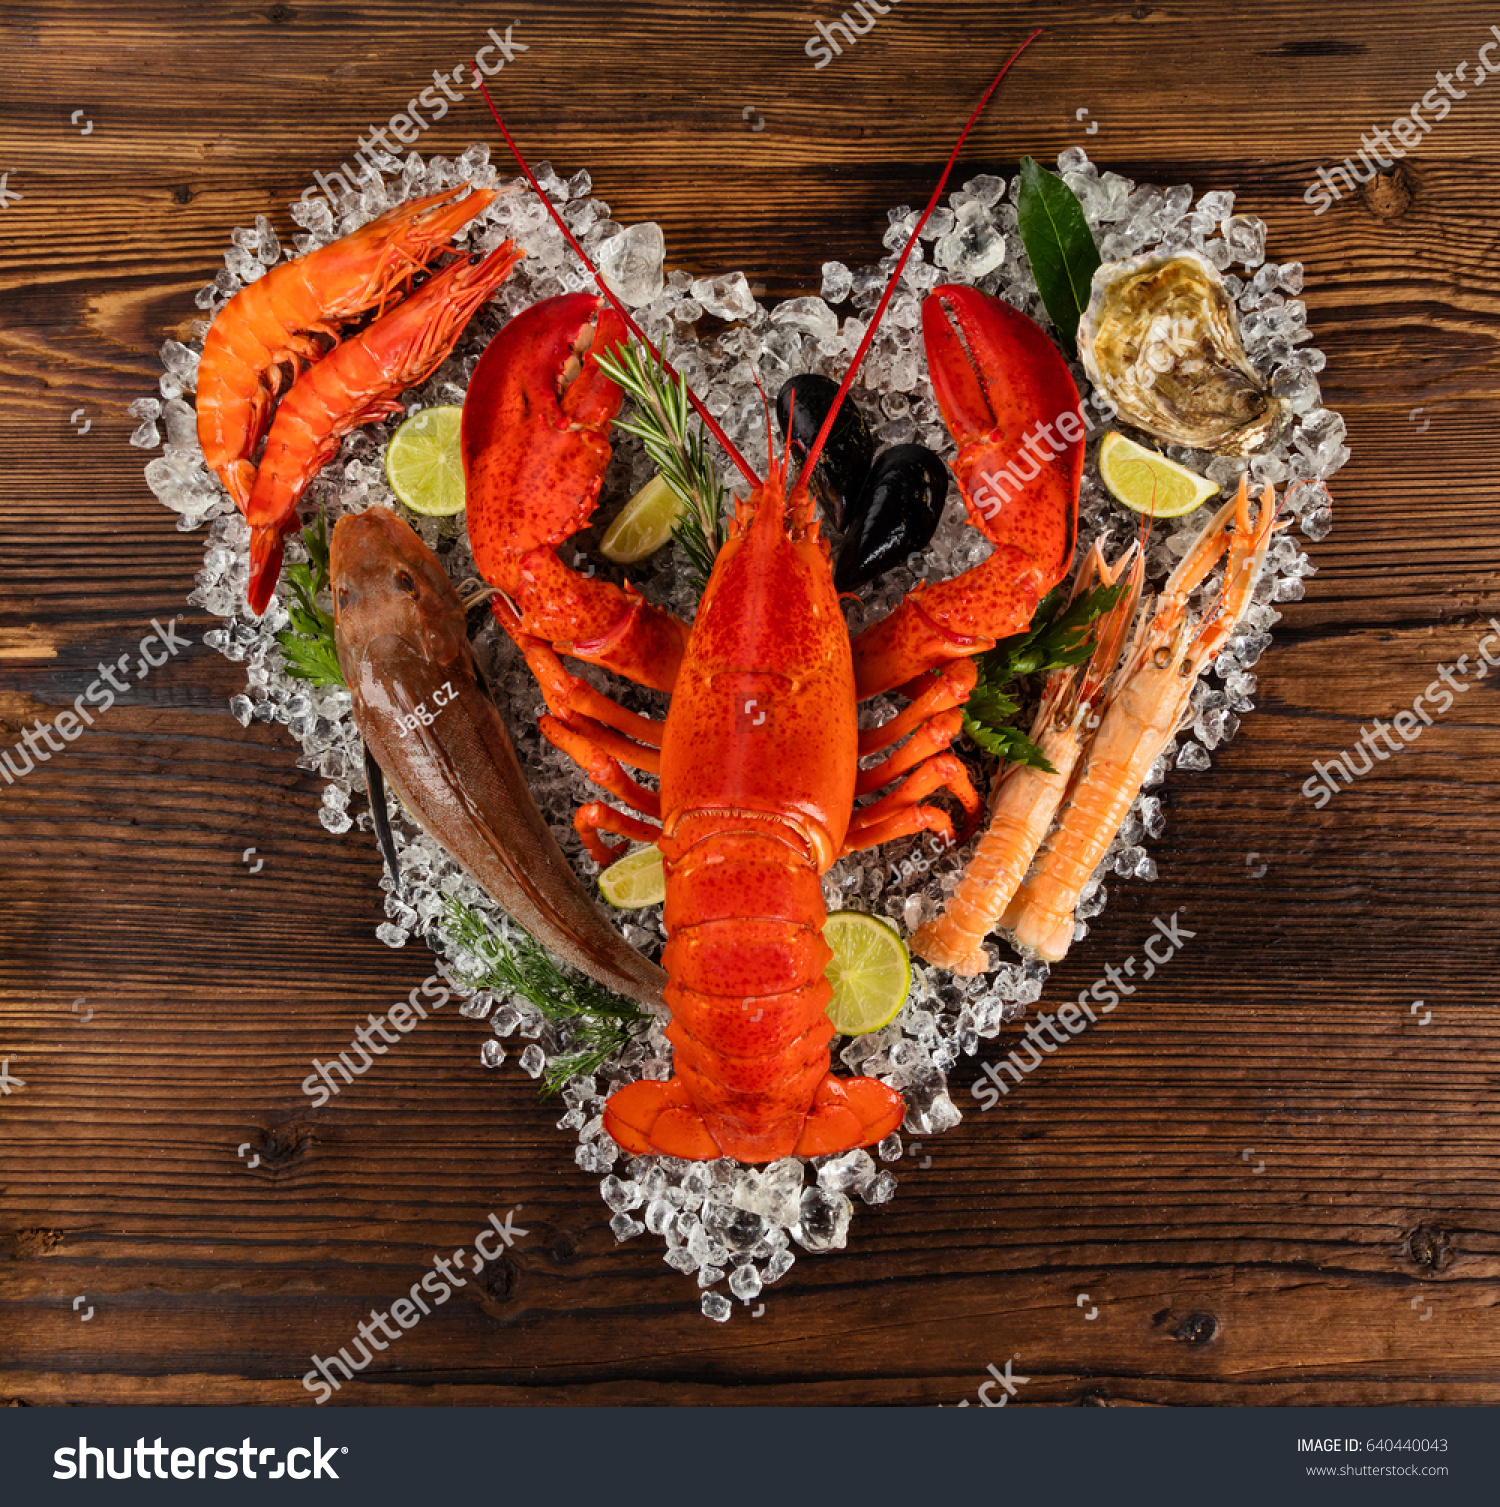 Fresh Seafood Lobster Mussels Fish Prawns Stock Photo 640440043